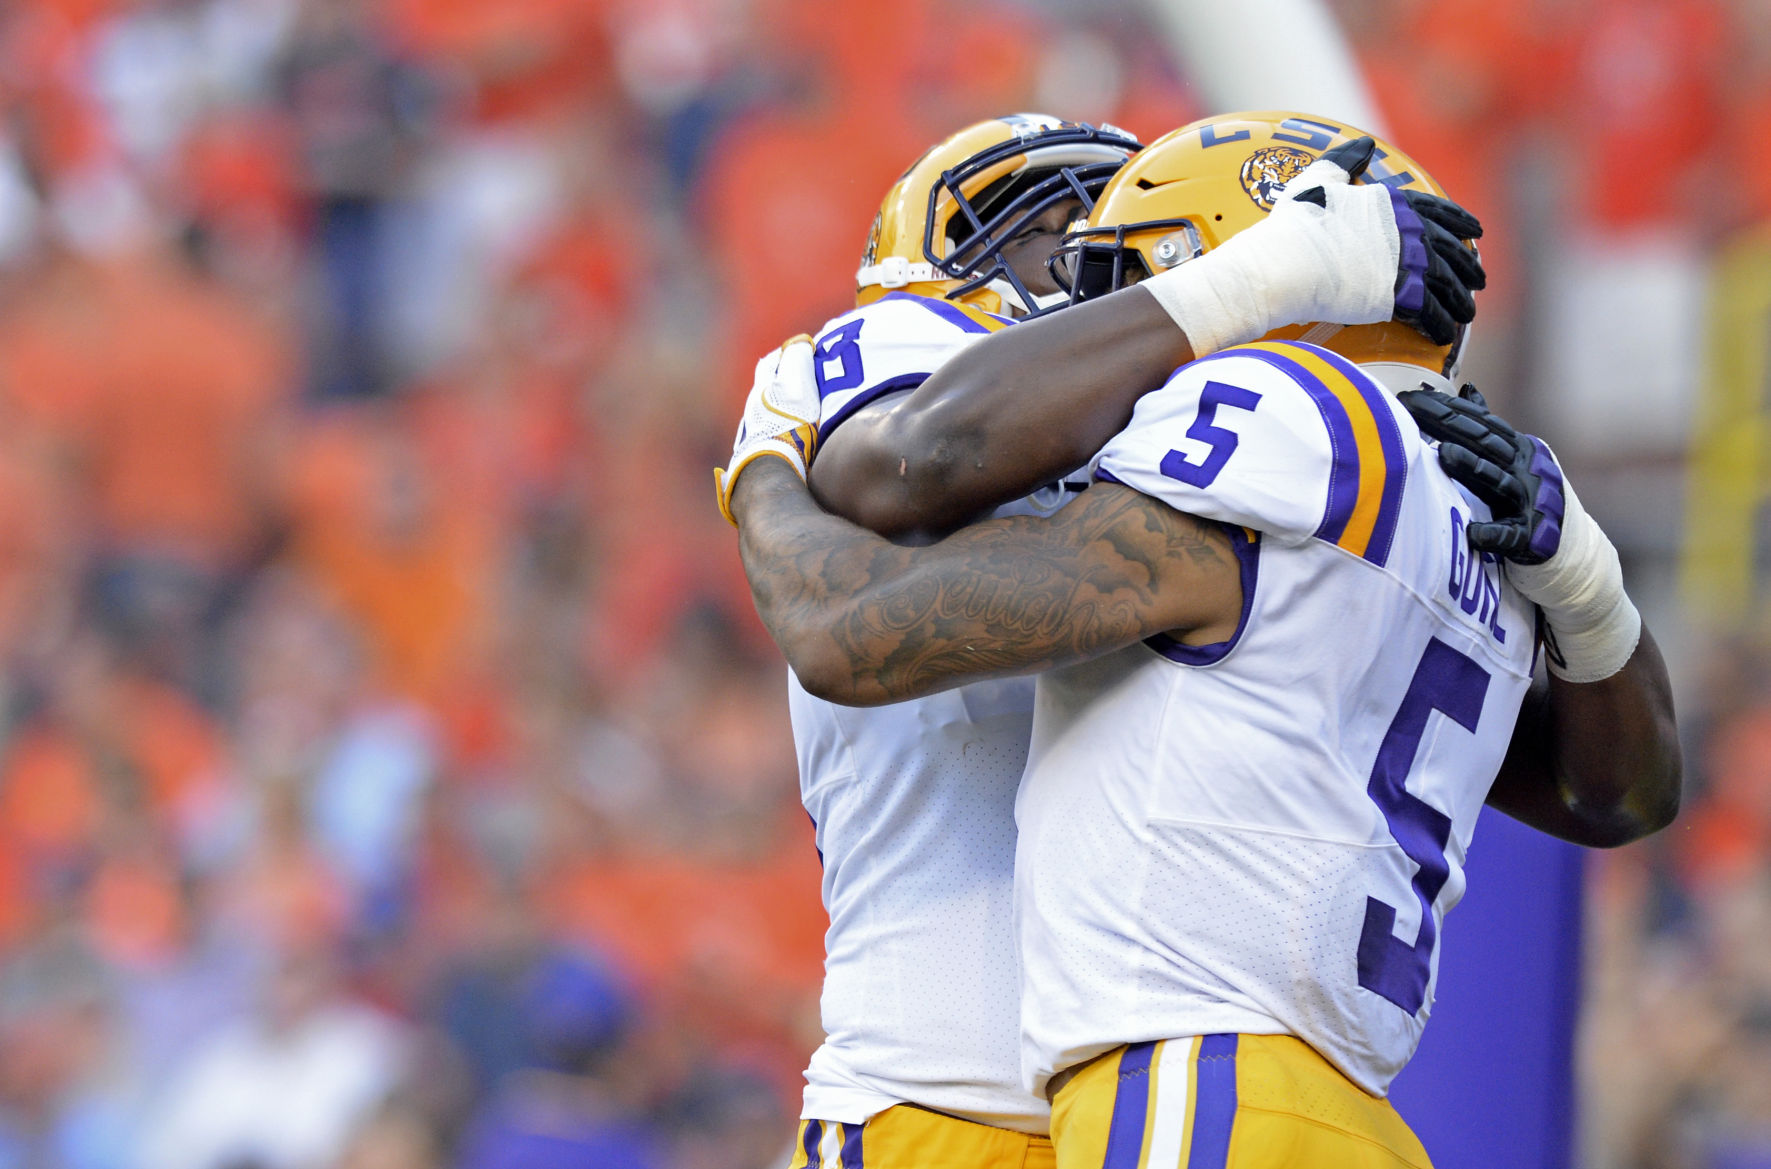 LSU suffers embarrassing loss to Troy